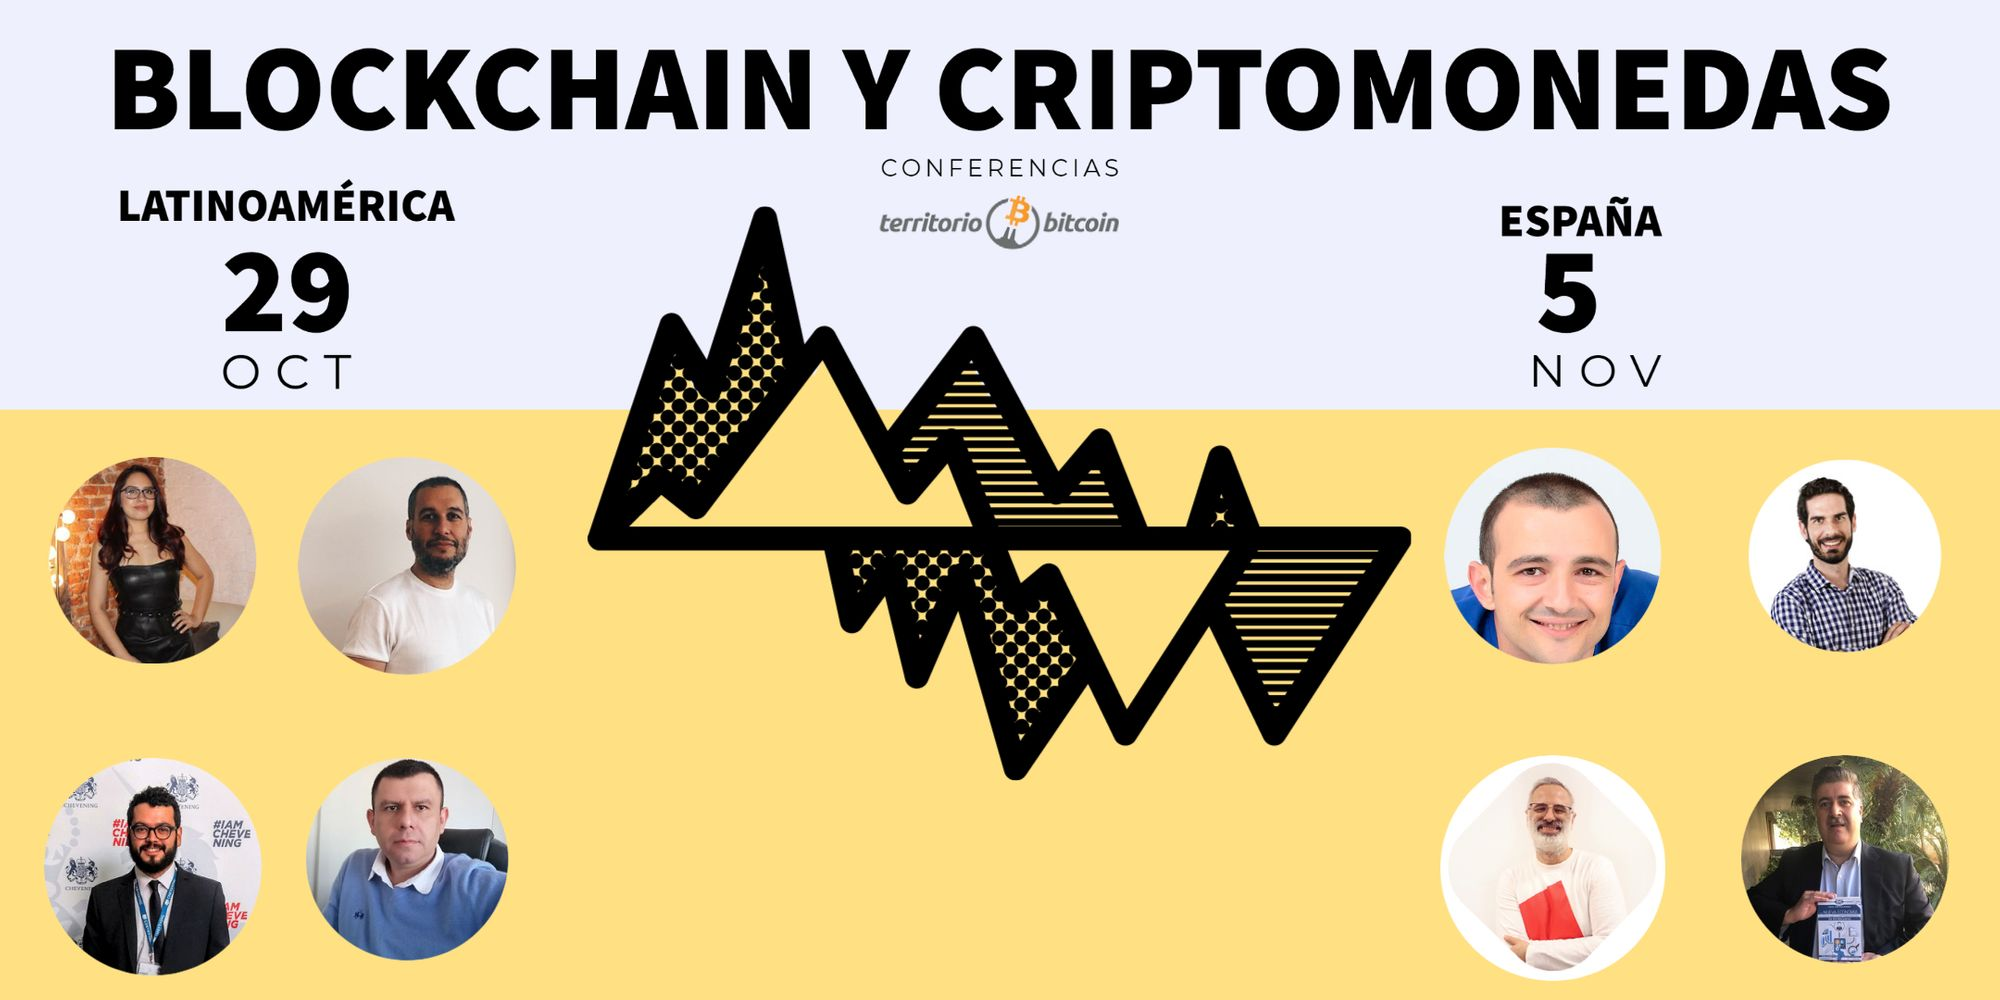 Ciclo-conferencias-Blockchain-criptomonedas-LATAM-SPAIN-1